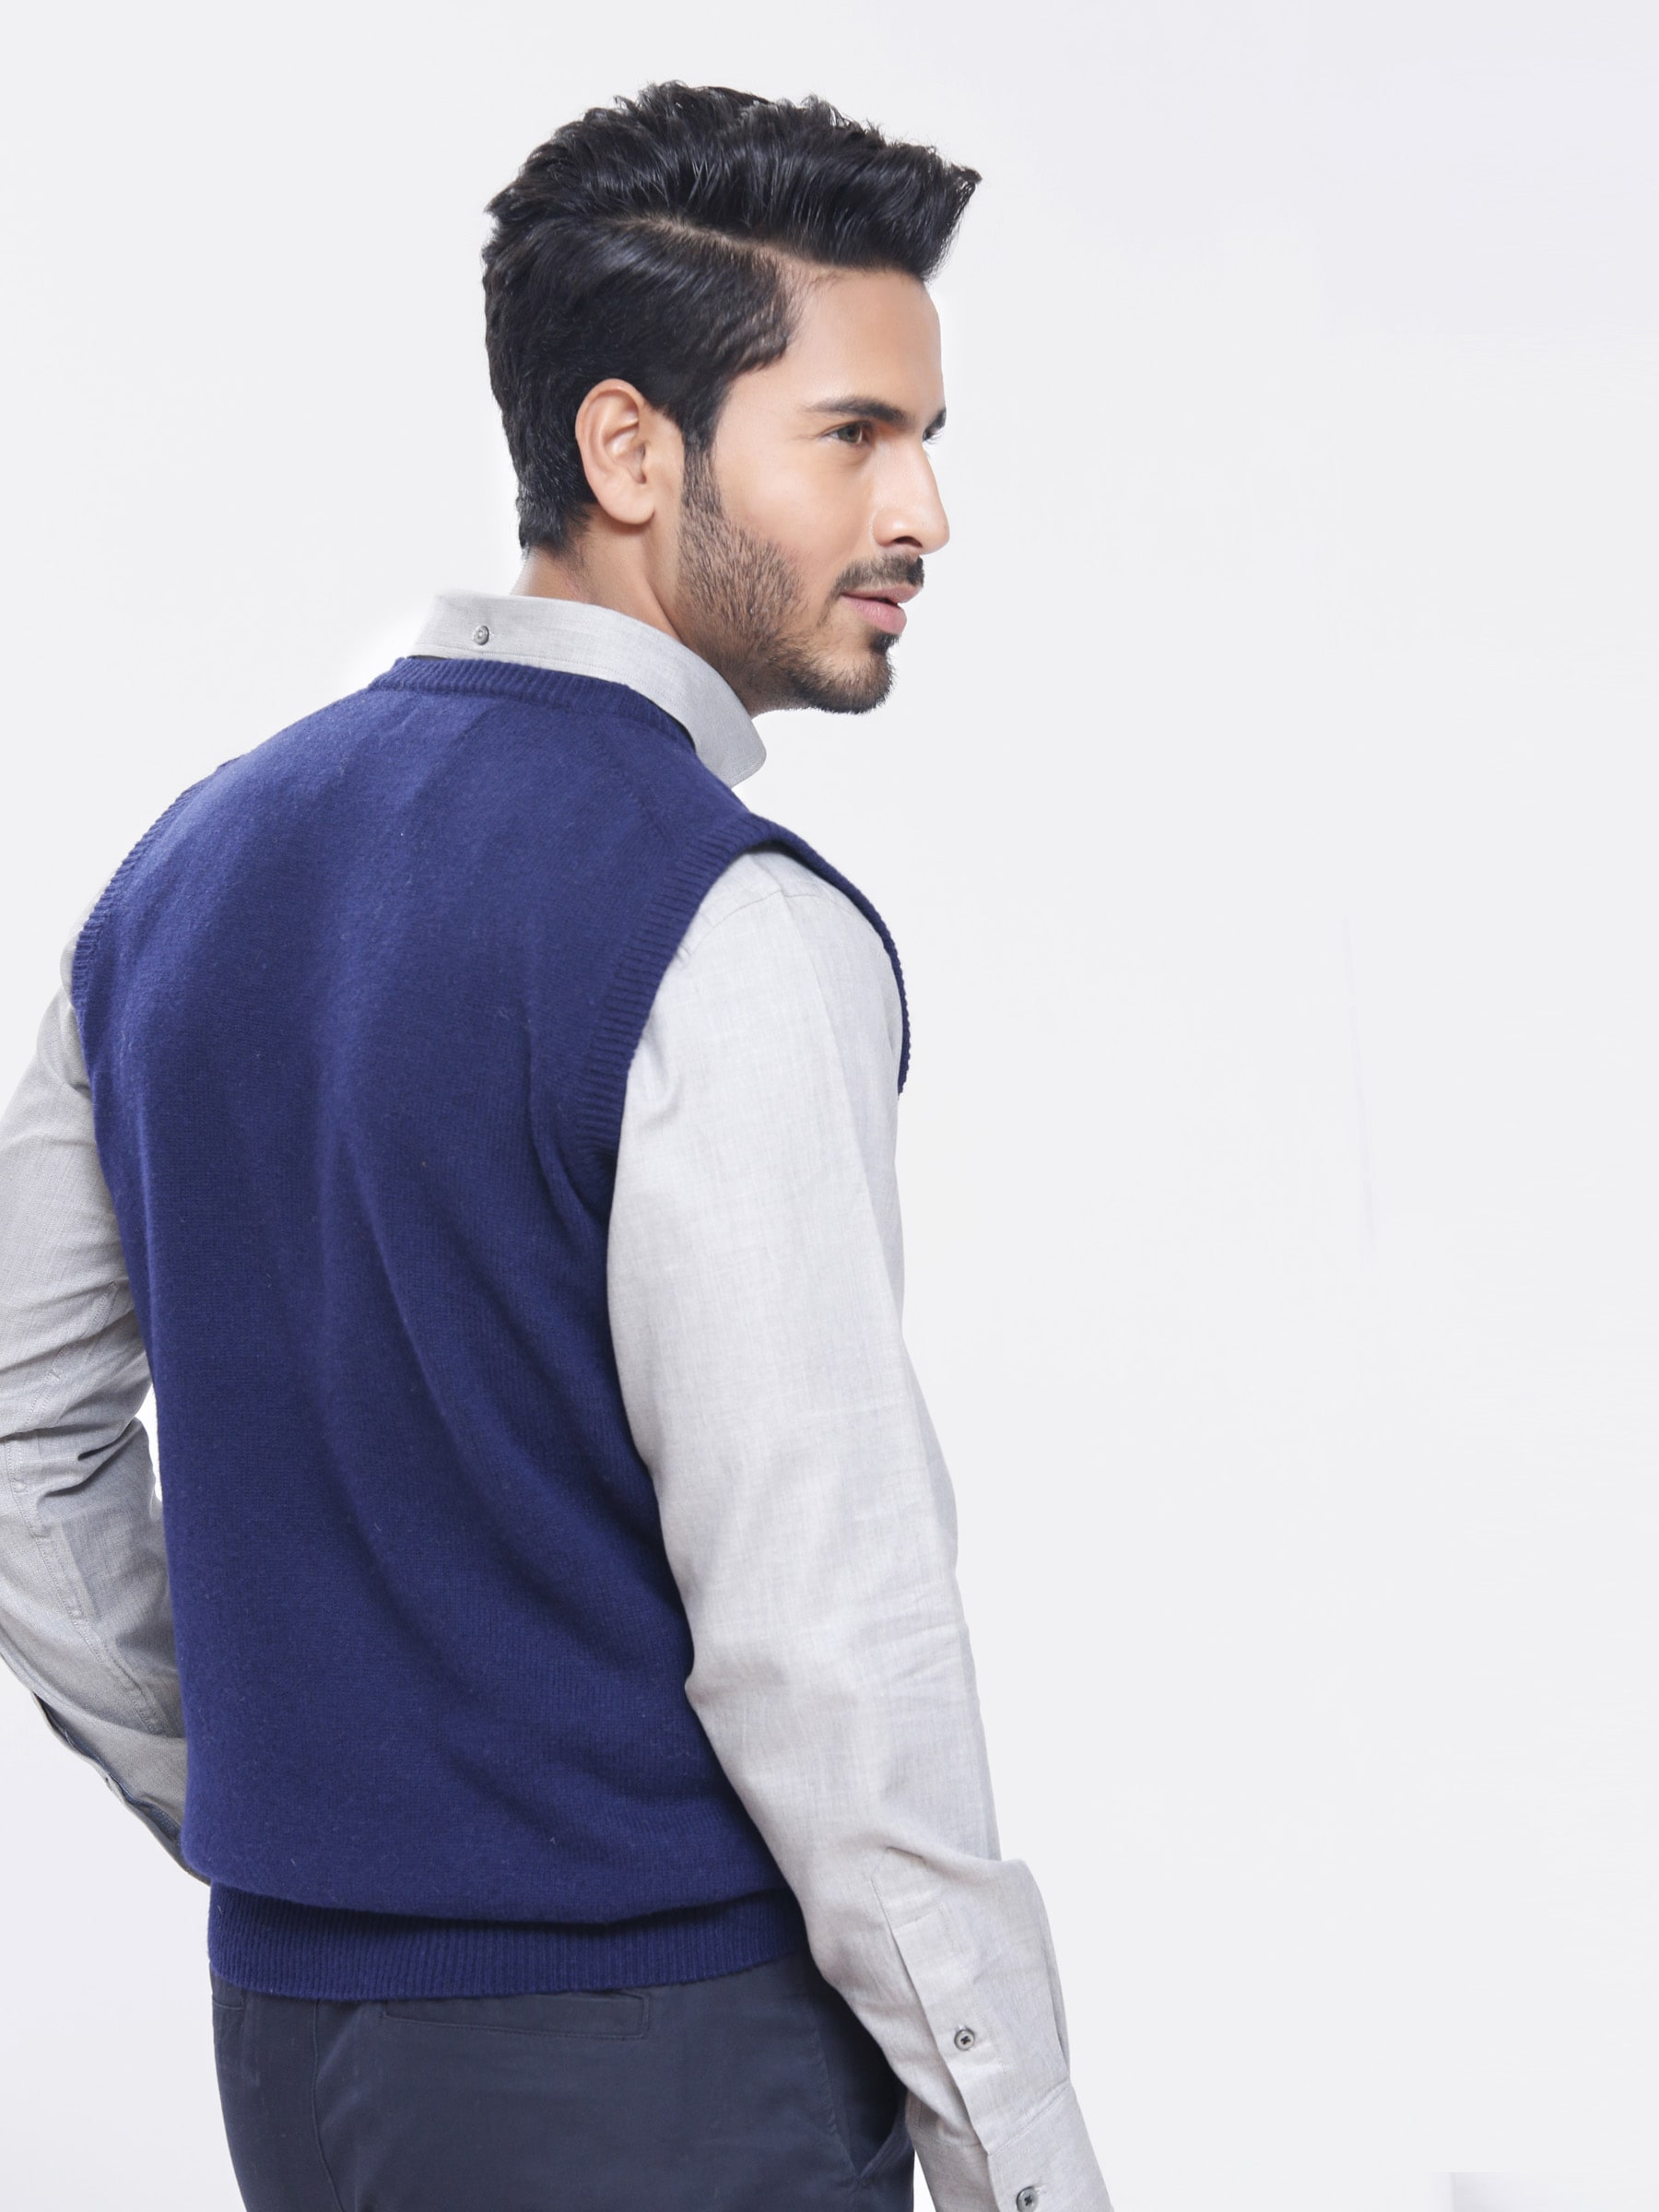 Lambswool Navy Blue Sleeveless Sweater | Brumano